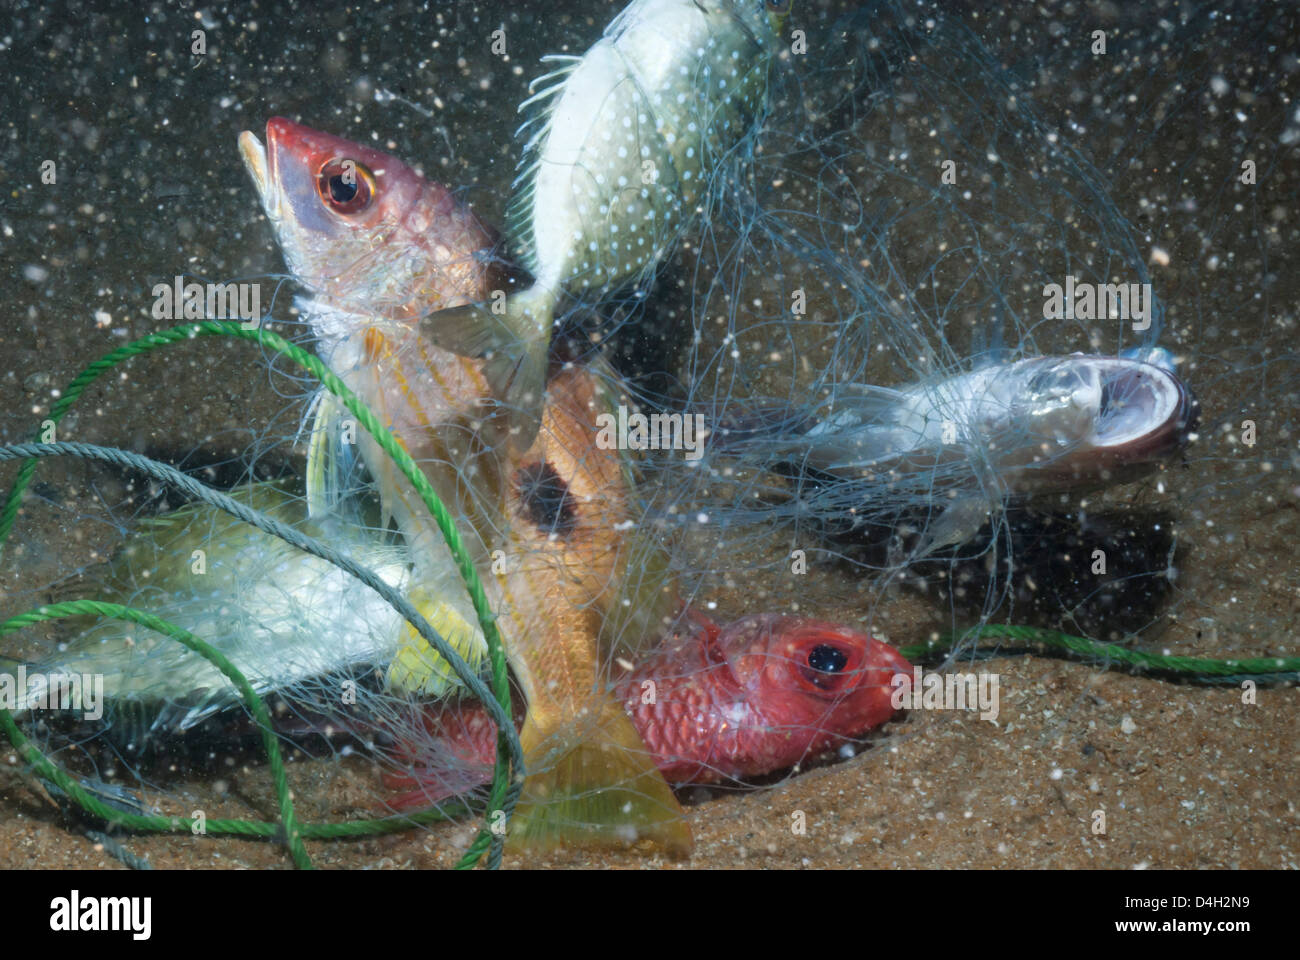 Striped snapper (Lutjanus) caught in fishing net, Southern Thailand, Andaman Sea, Indian Ocean, Southeast Asia - Stock Image